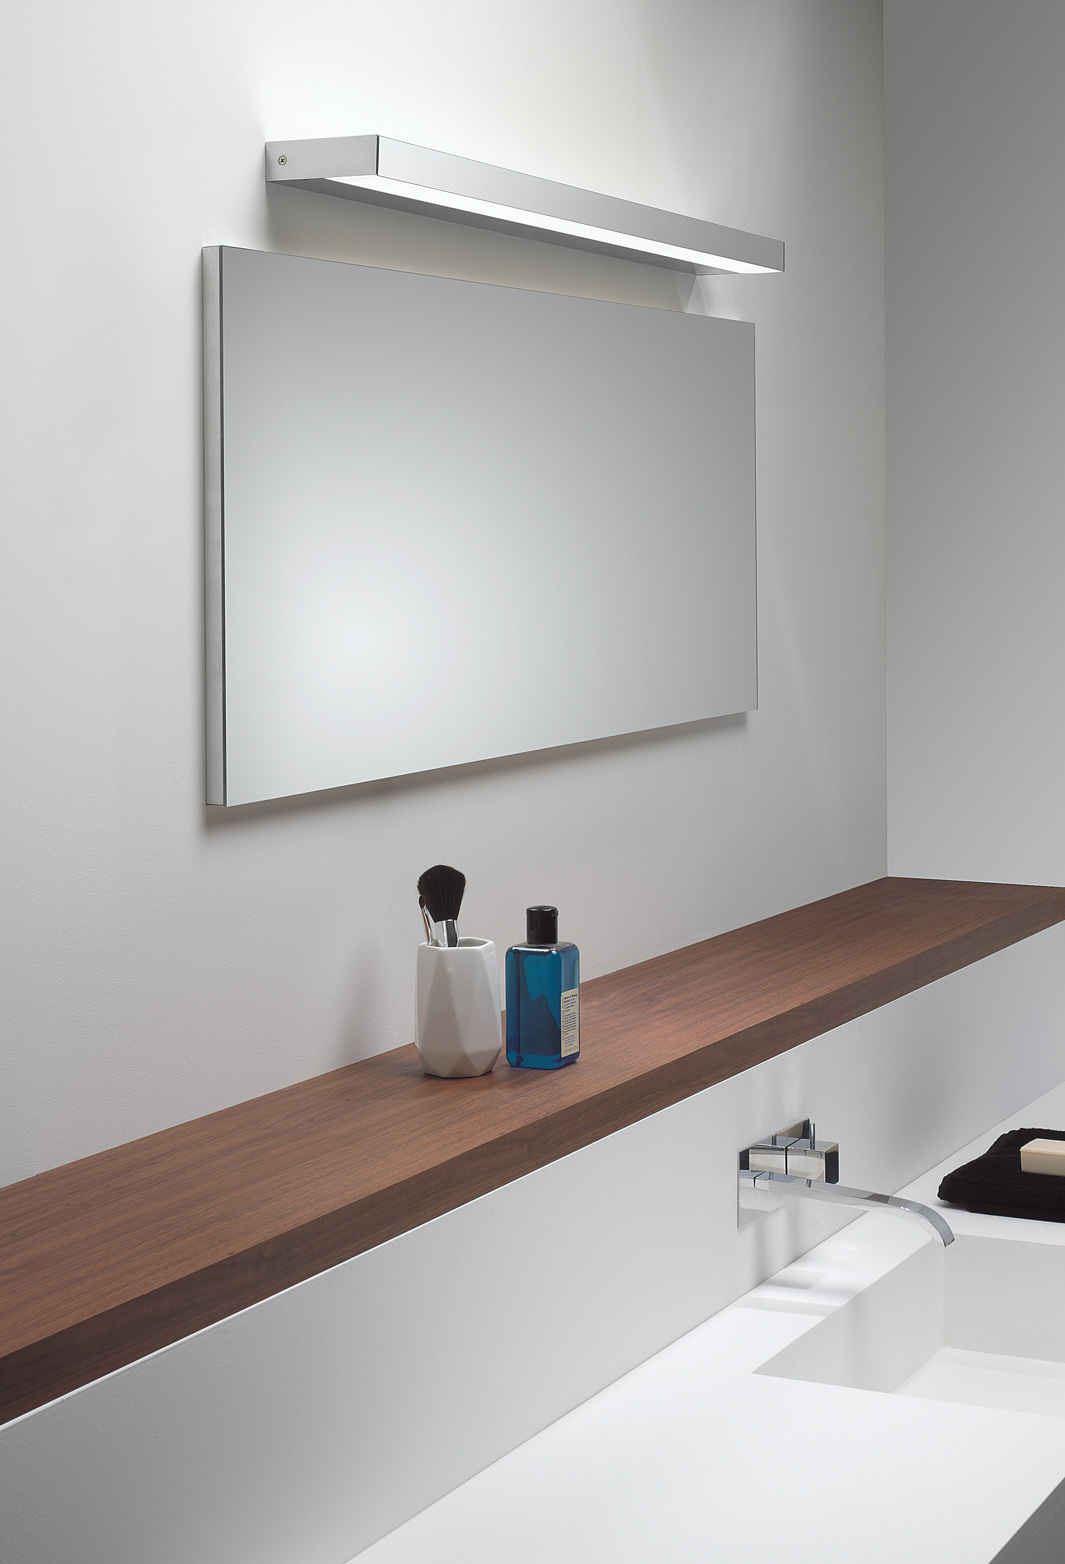 Astro axios led ip44 bathroom wall light mirror light up for Bathroom wall mirrors